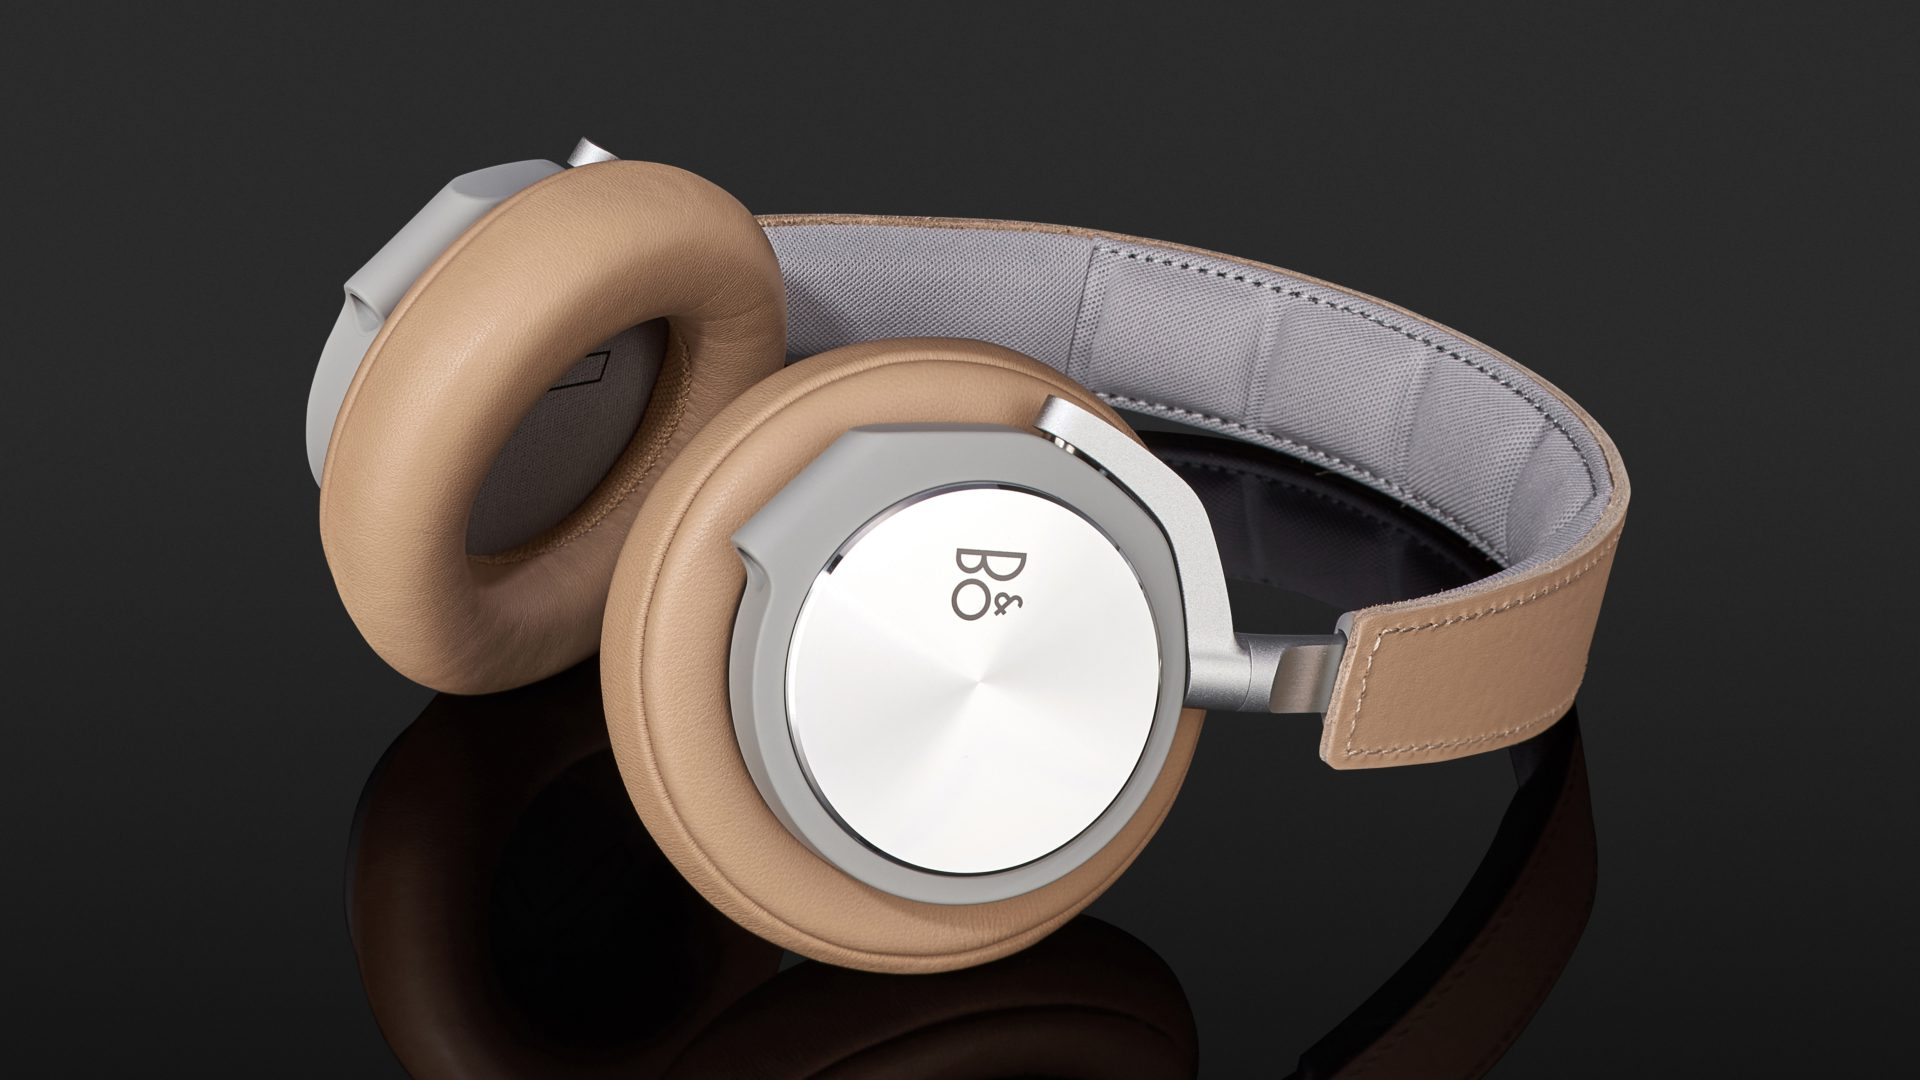 b o play beoplay h6 im test bei. Black Bedroom Furniture Sets. Home Design Ideas